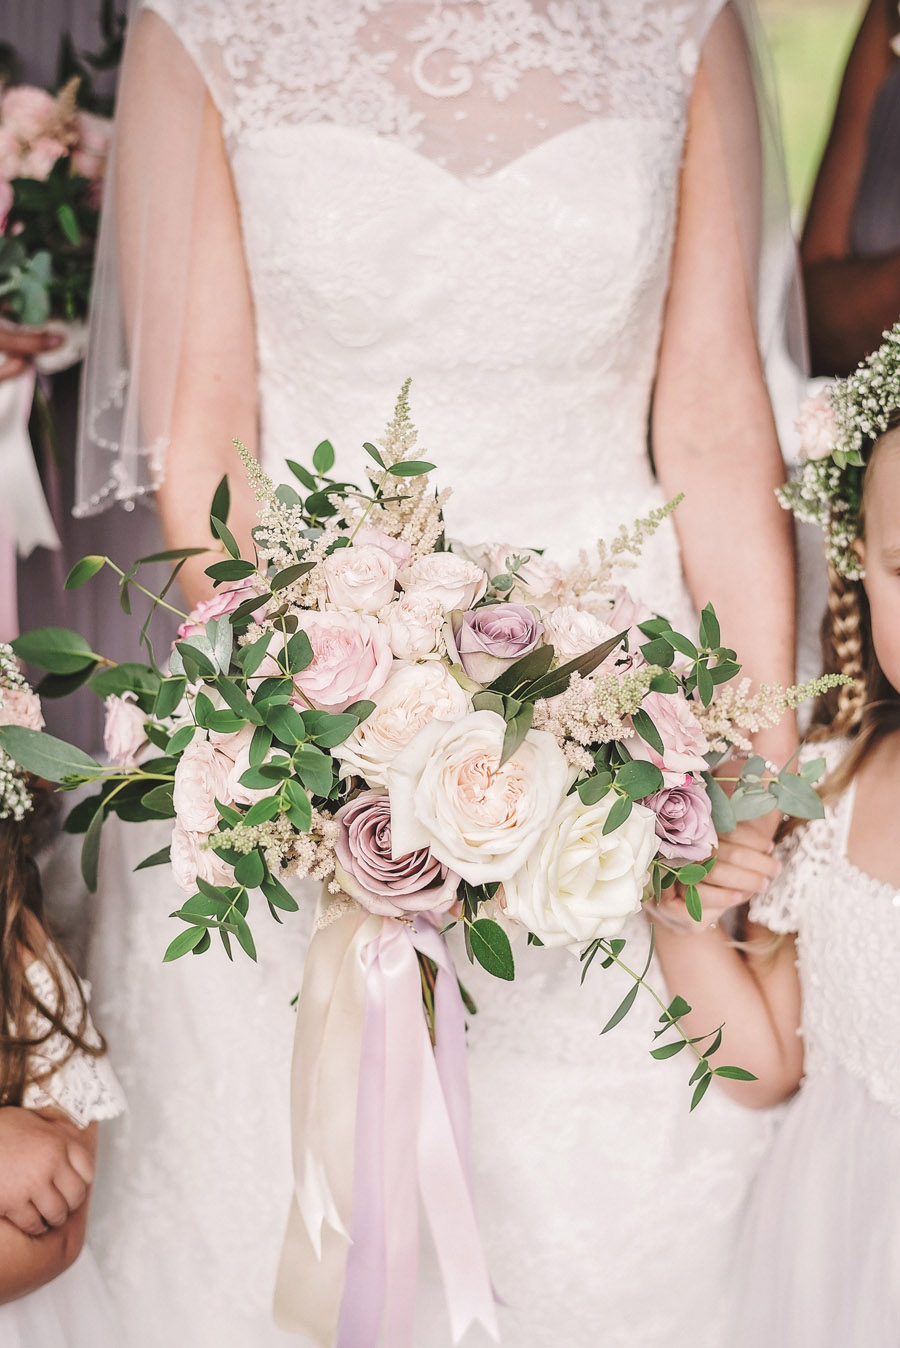 Eversholt Hall wedding with feminine floral styling, image credit Matthew Bishop Photography (17)